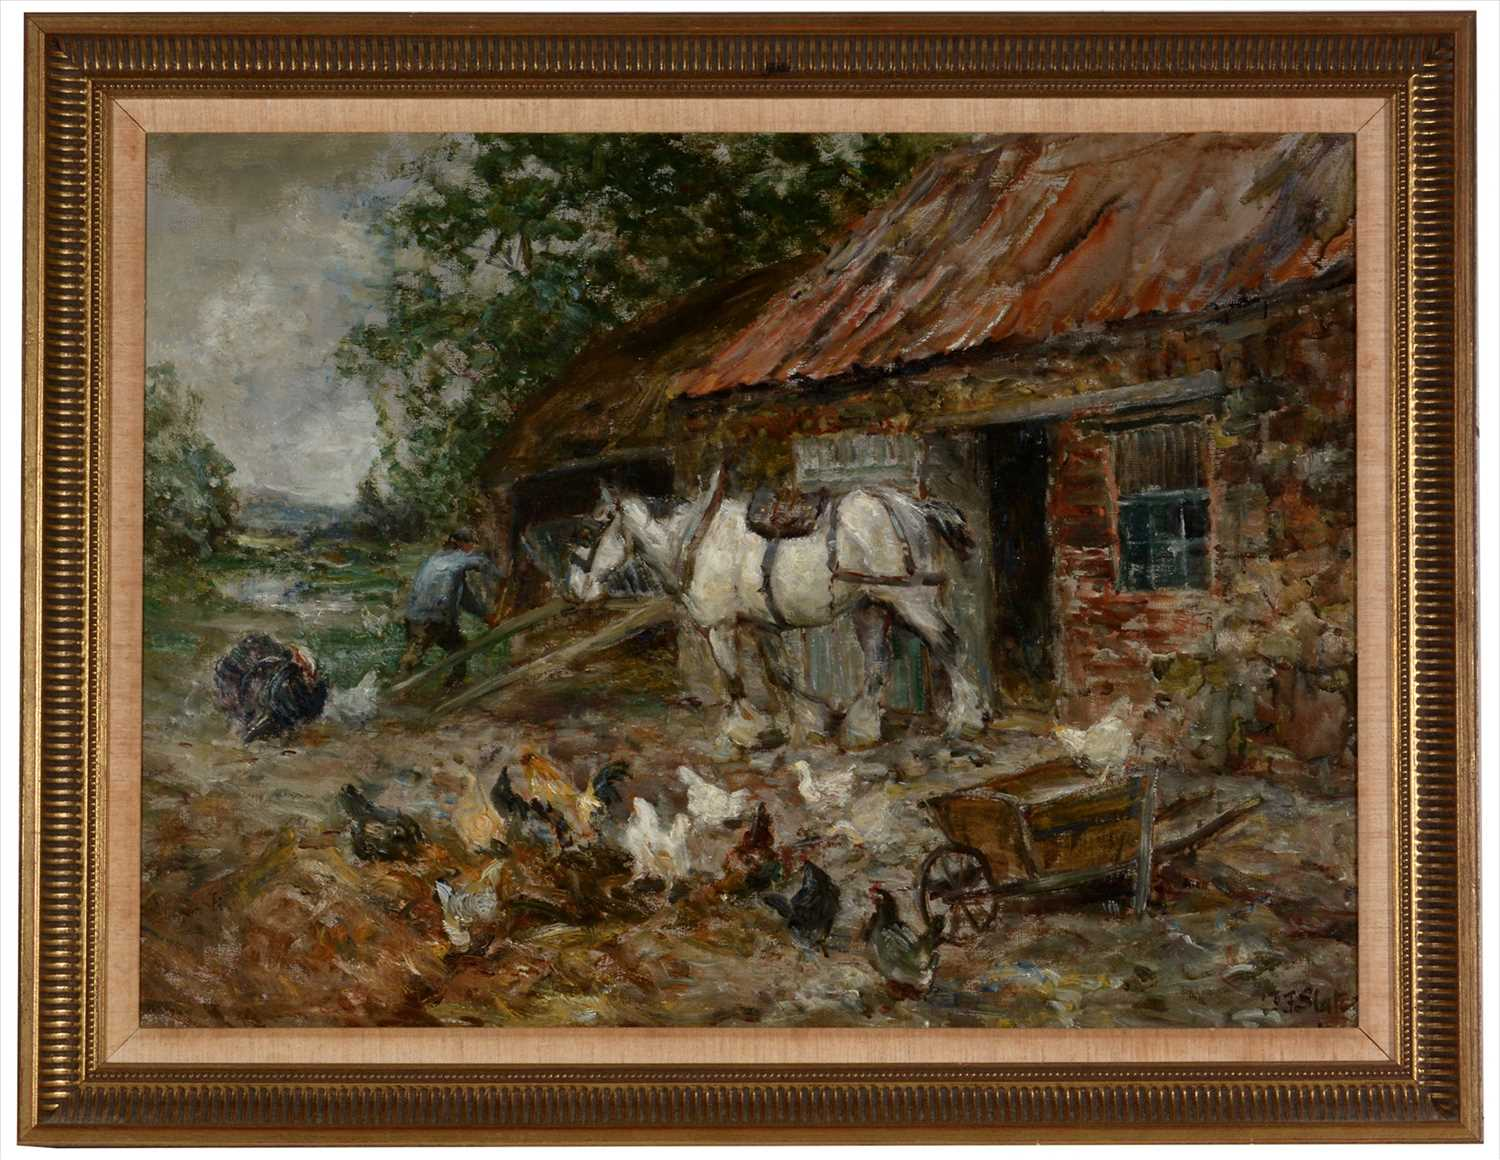 The Pictures & Books Auction - ONLINE ONLY